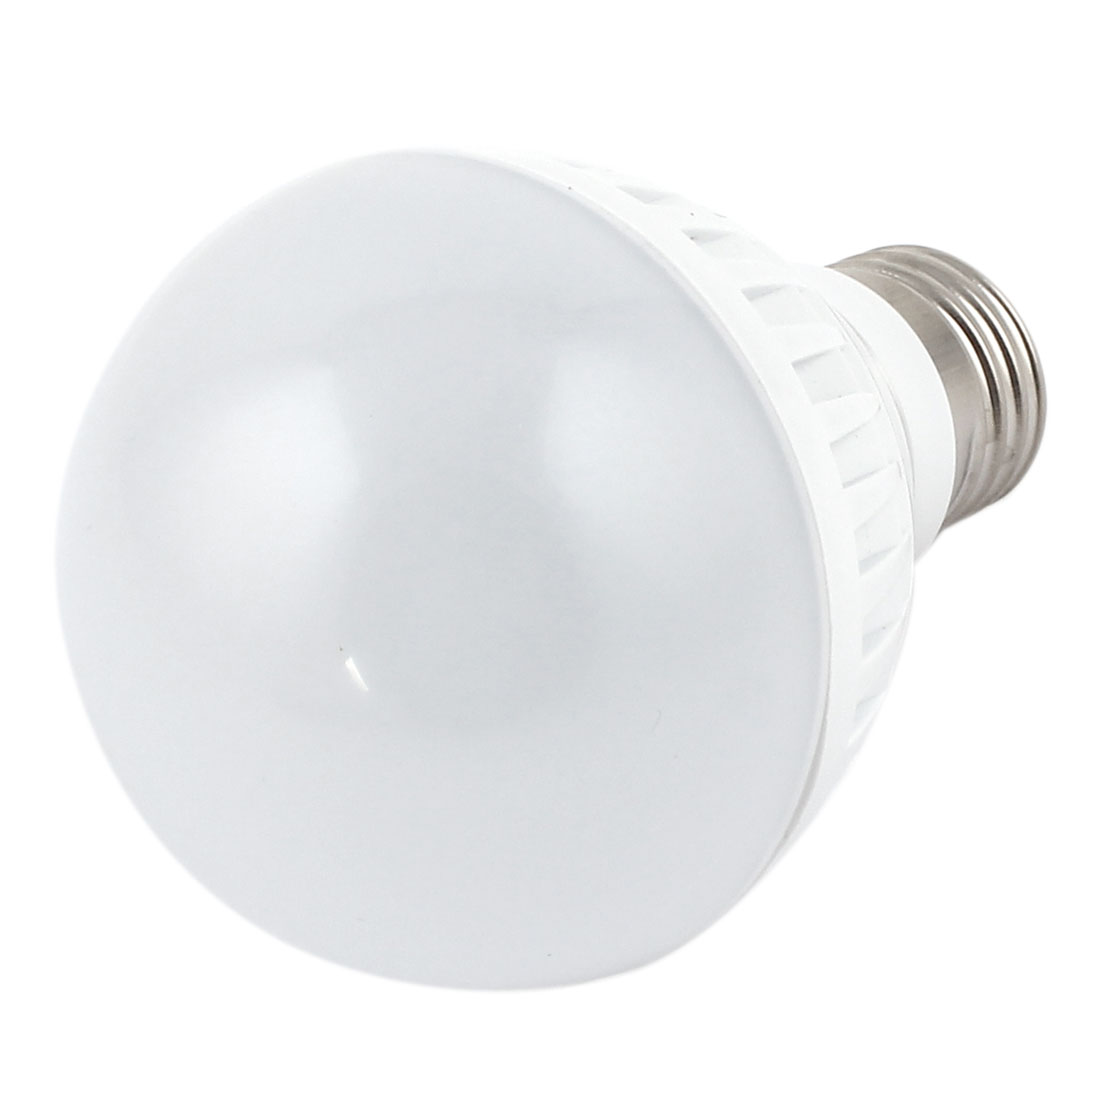 7W White Plastic E27 Base 70mm Dia Globe Ball Bulb LED Lamp Shell